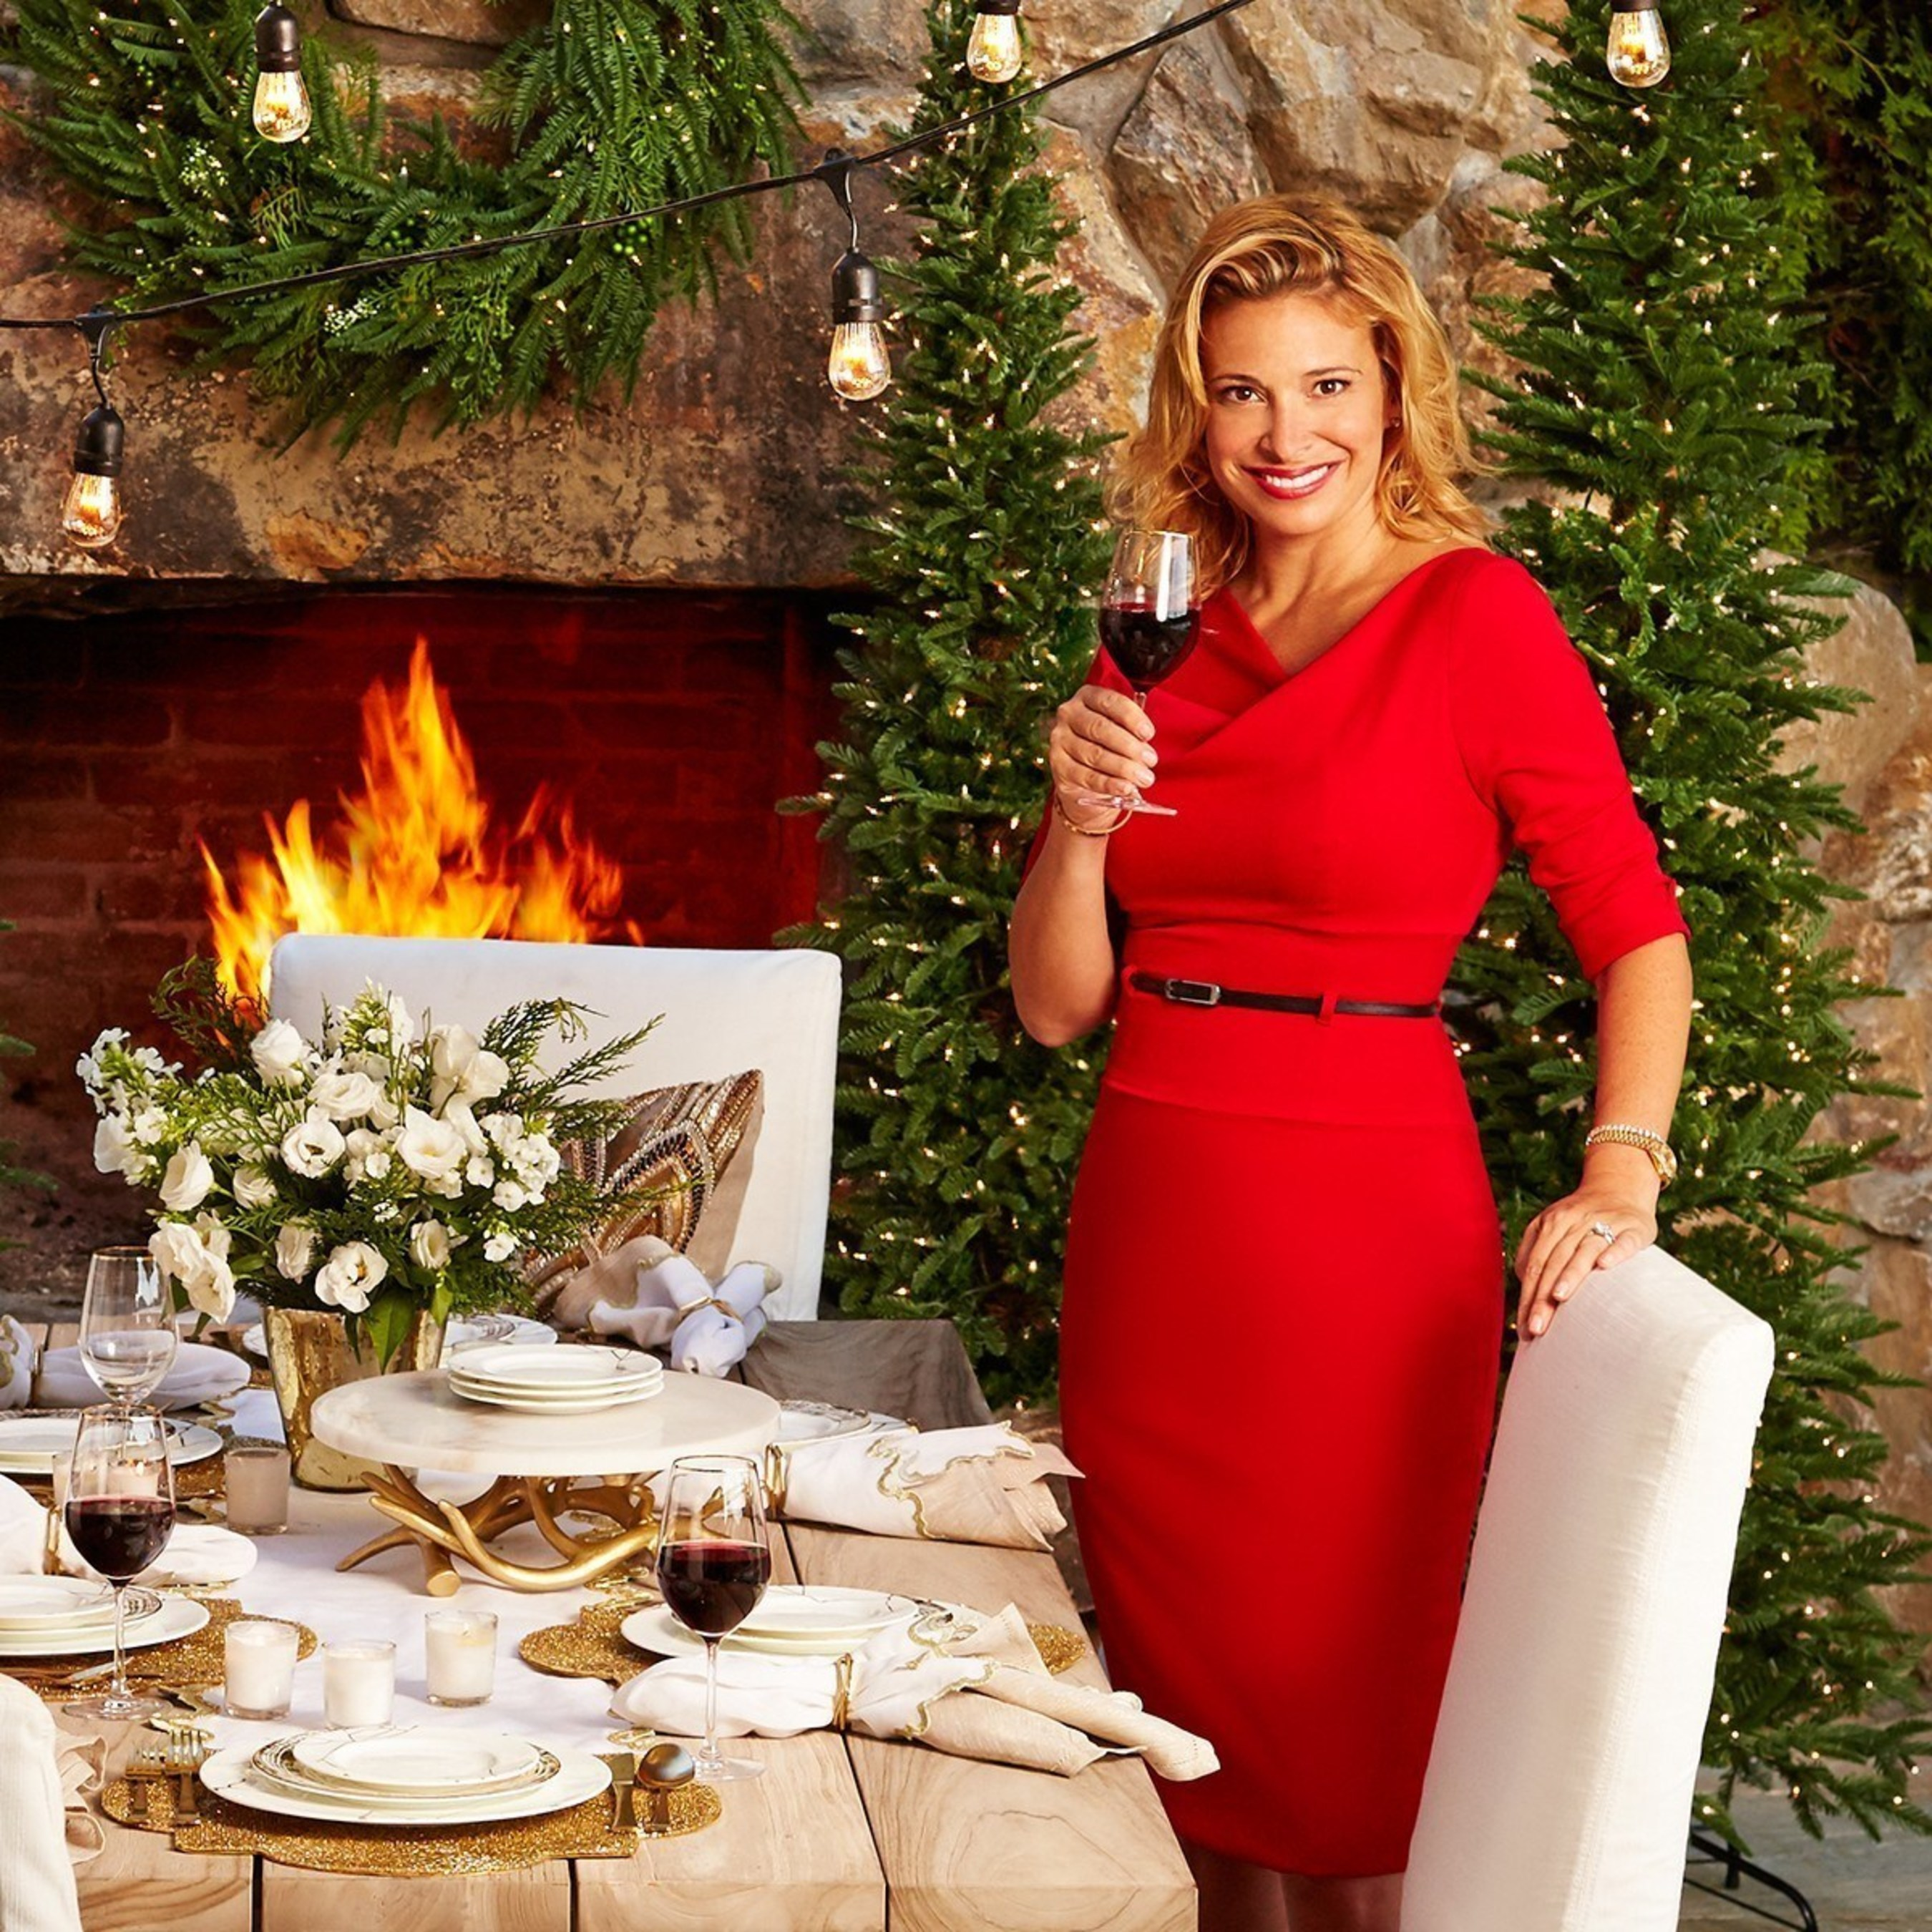 Celebrity chef Donatella Arpaia launches gourmet and holiday collections with Frontgate.